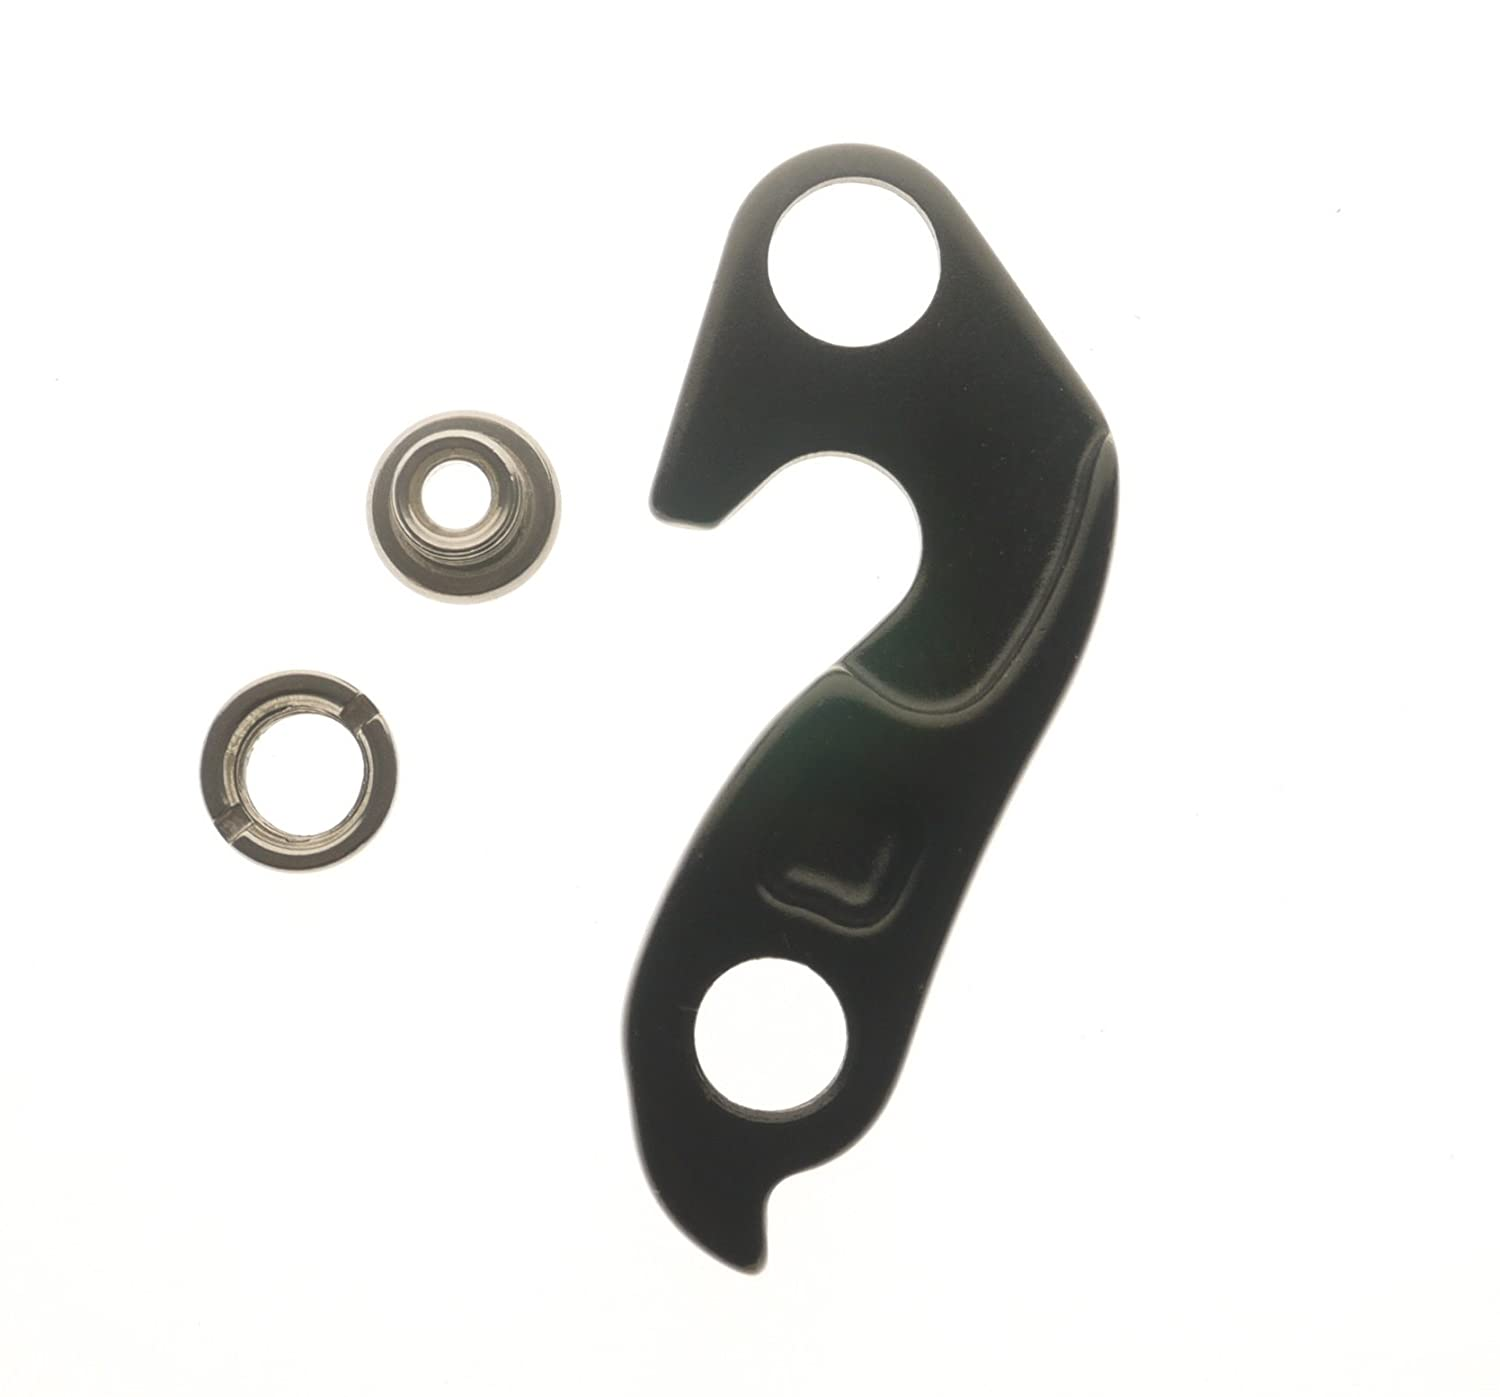 Derailleur Hanger fit for Specialized and Focus models 11 Juscycling